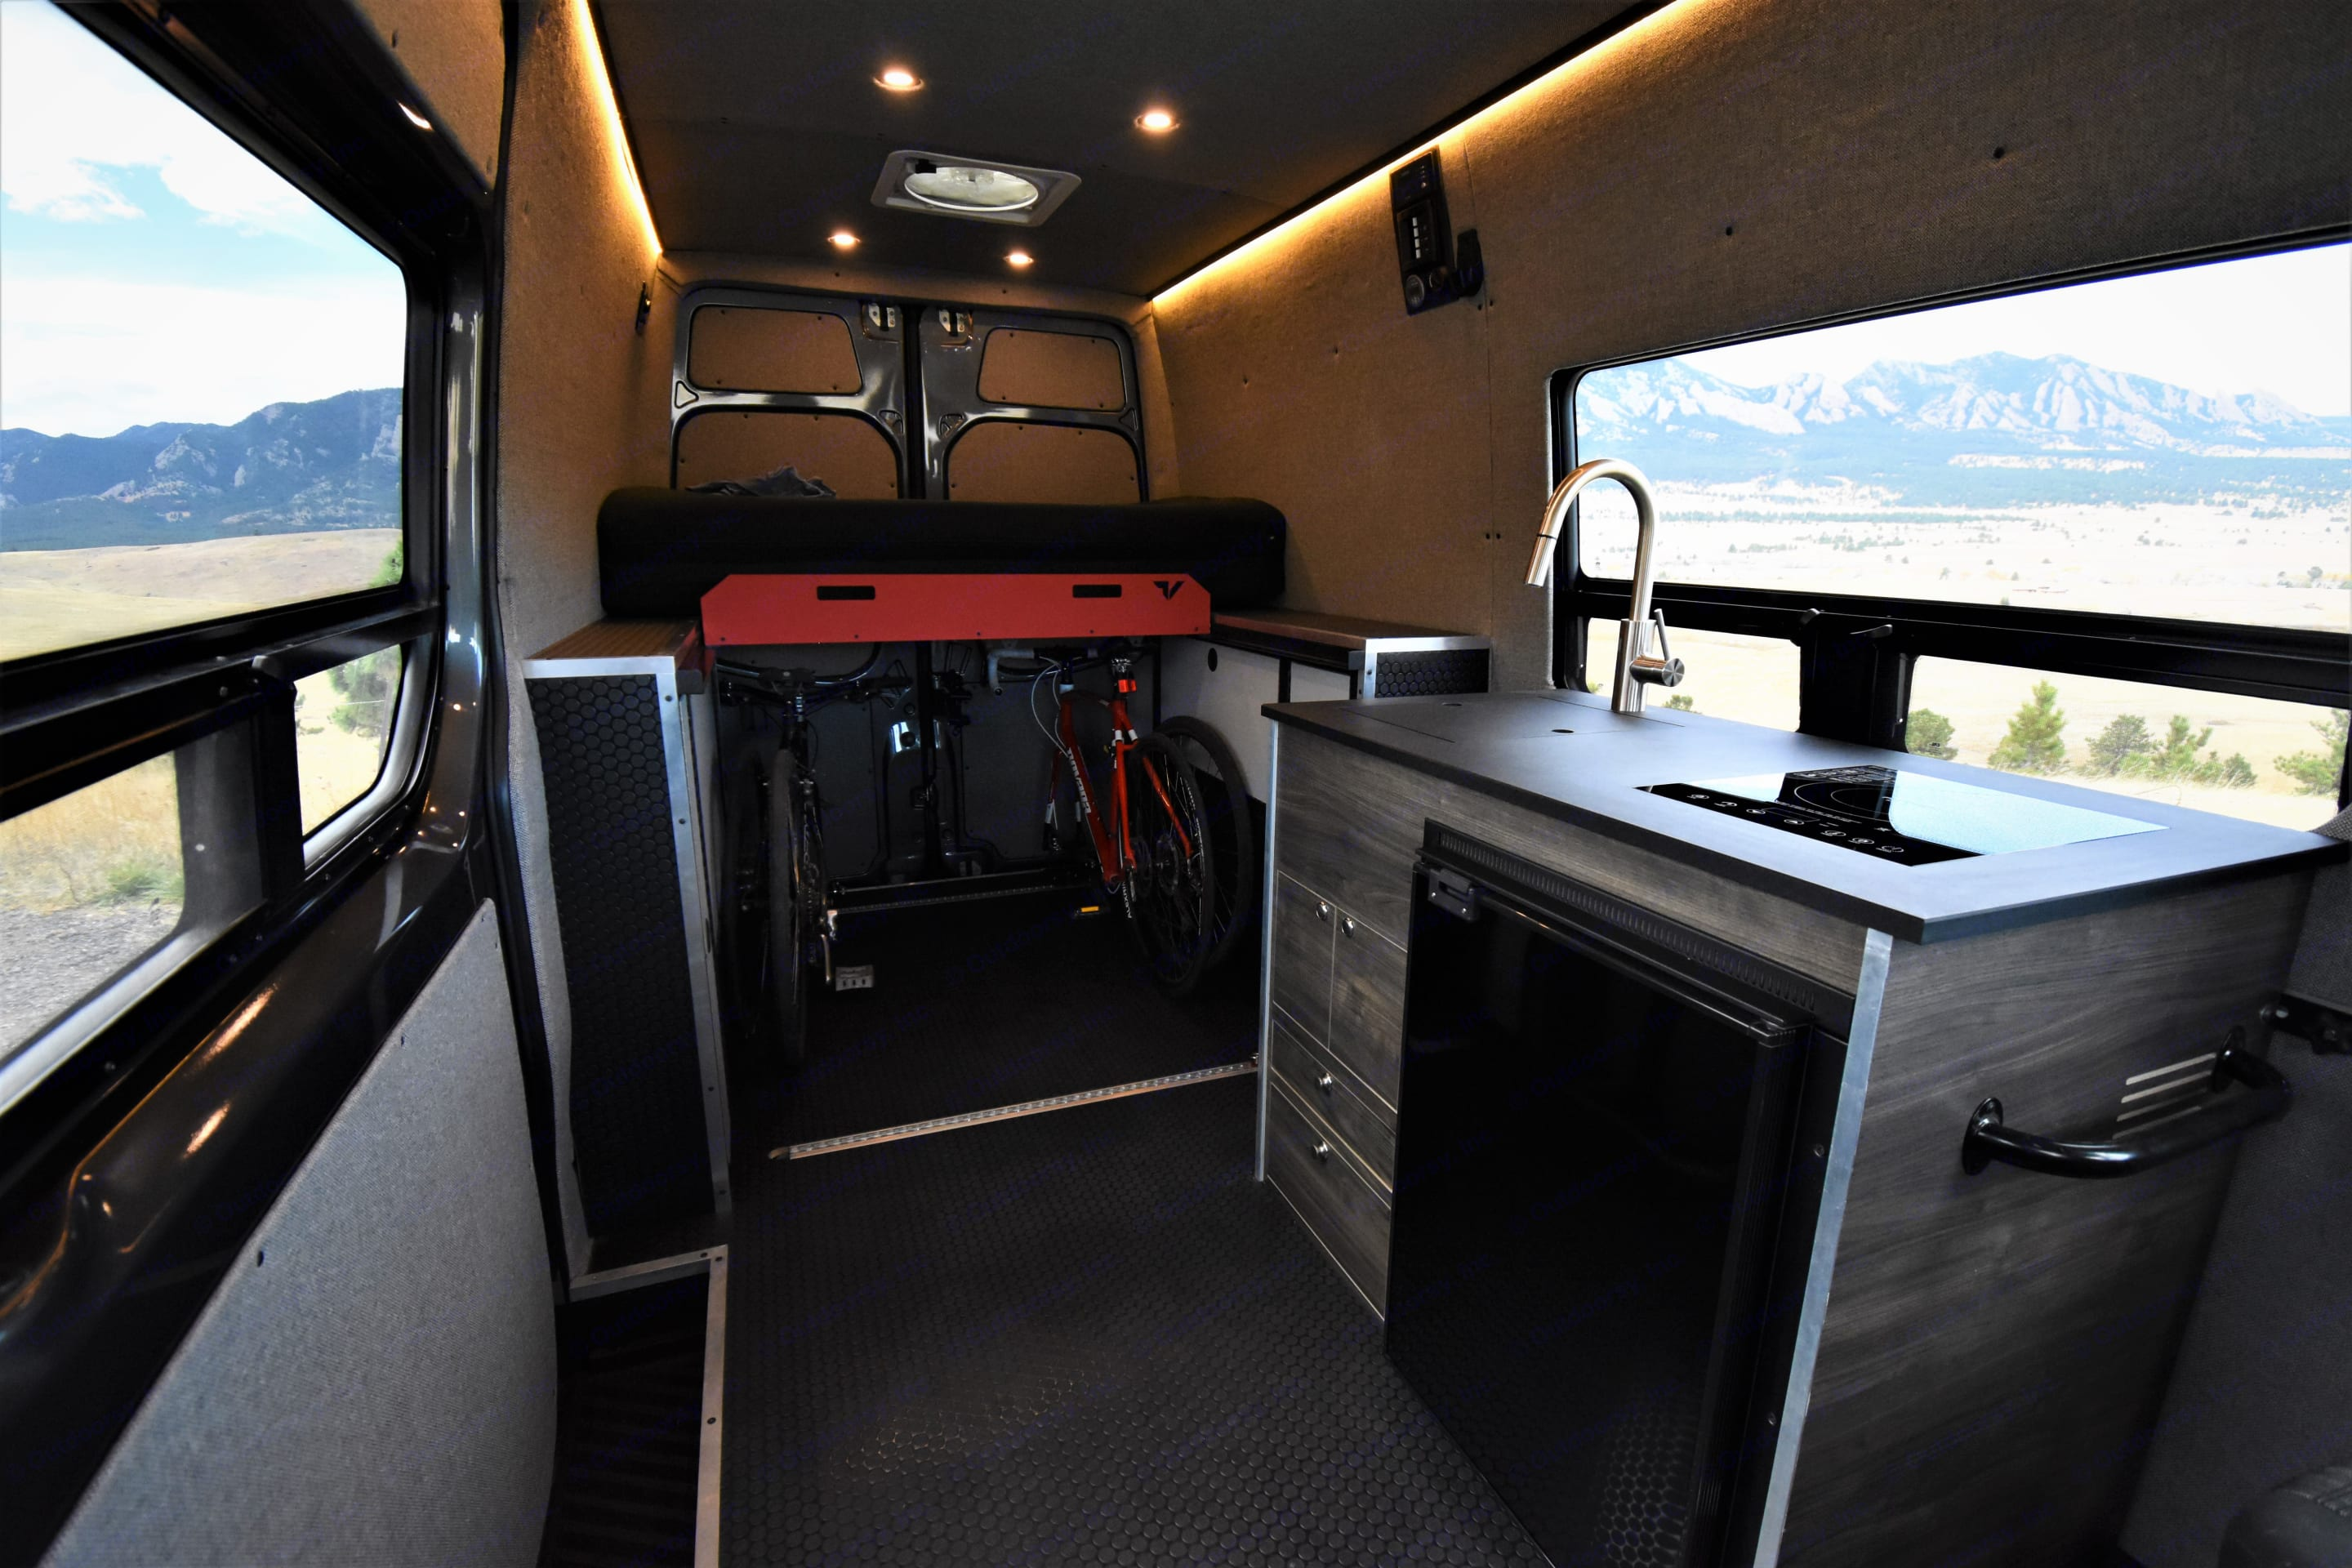 Kitchen and bed folded over for extended cab space.. Mercedes-Benz Sprinter 2019